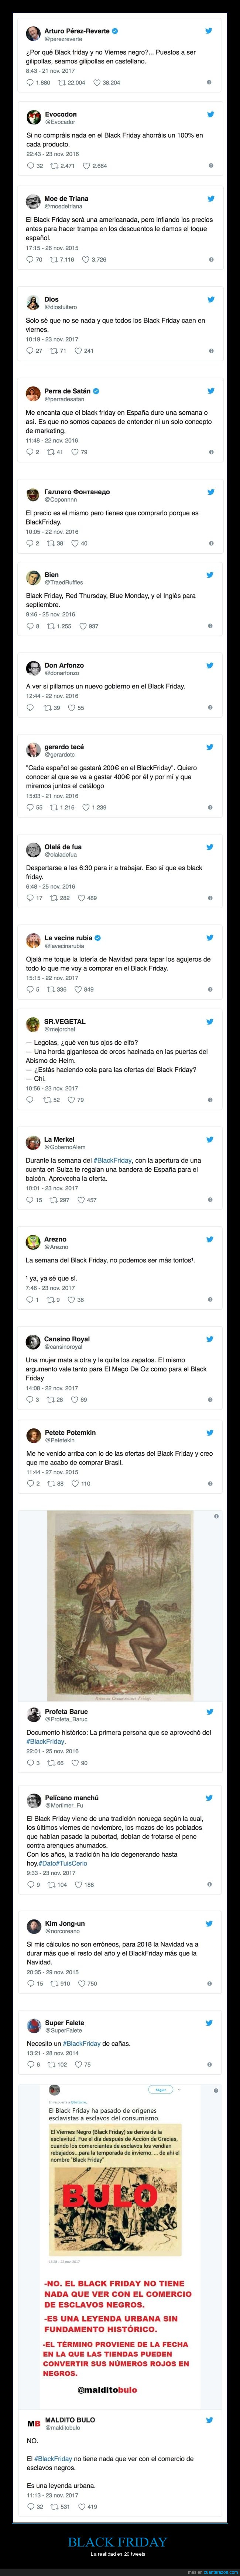 black friday,ofertas,tweets